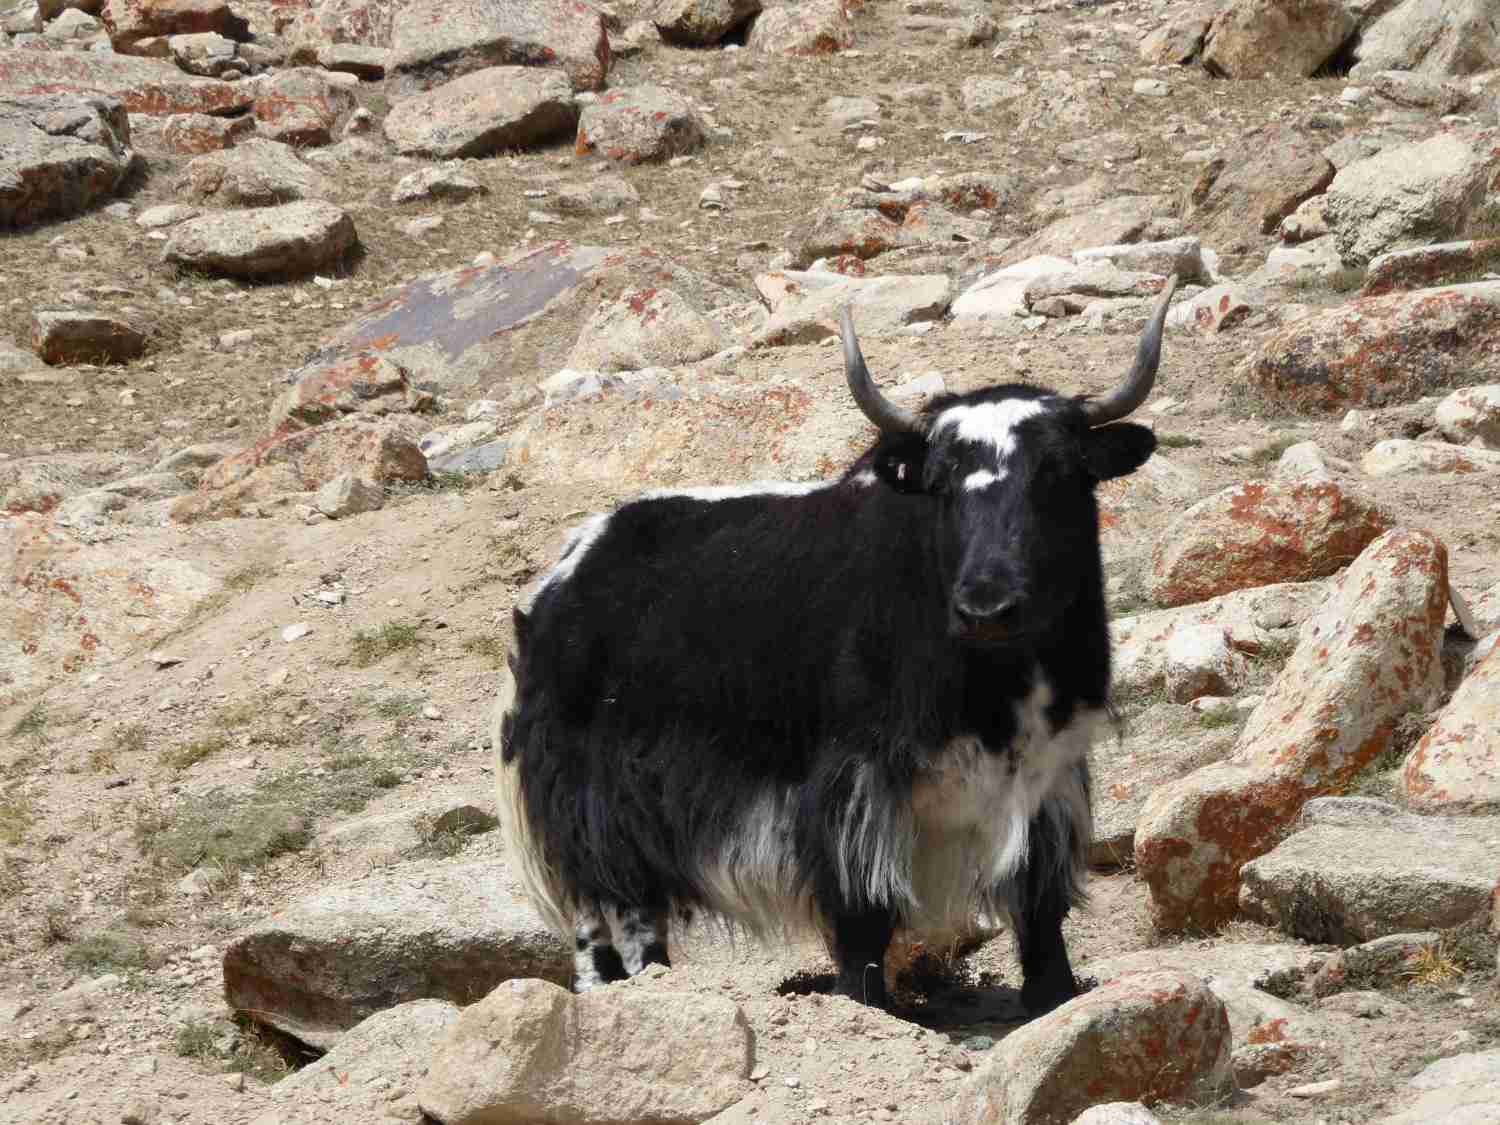 Yaks - Well protected against the cold